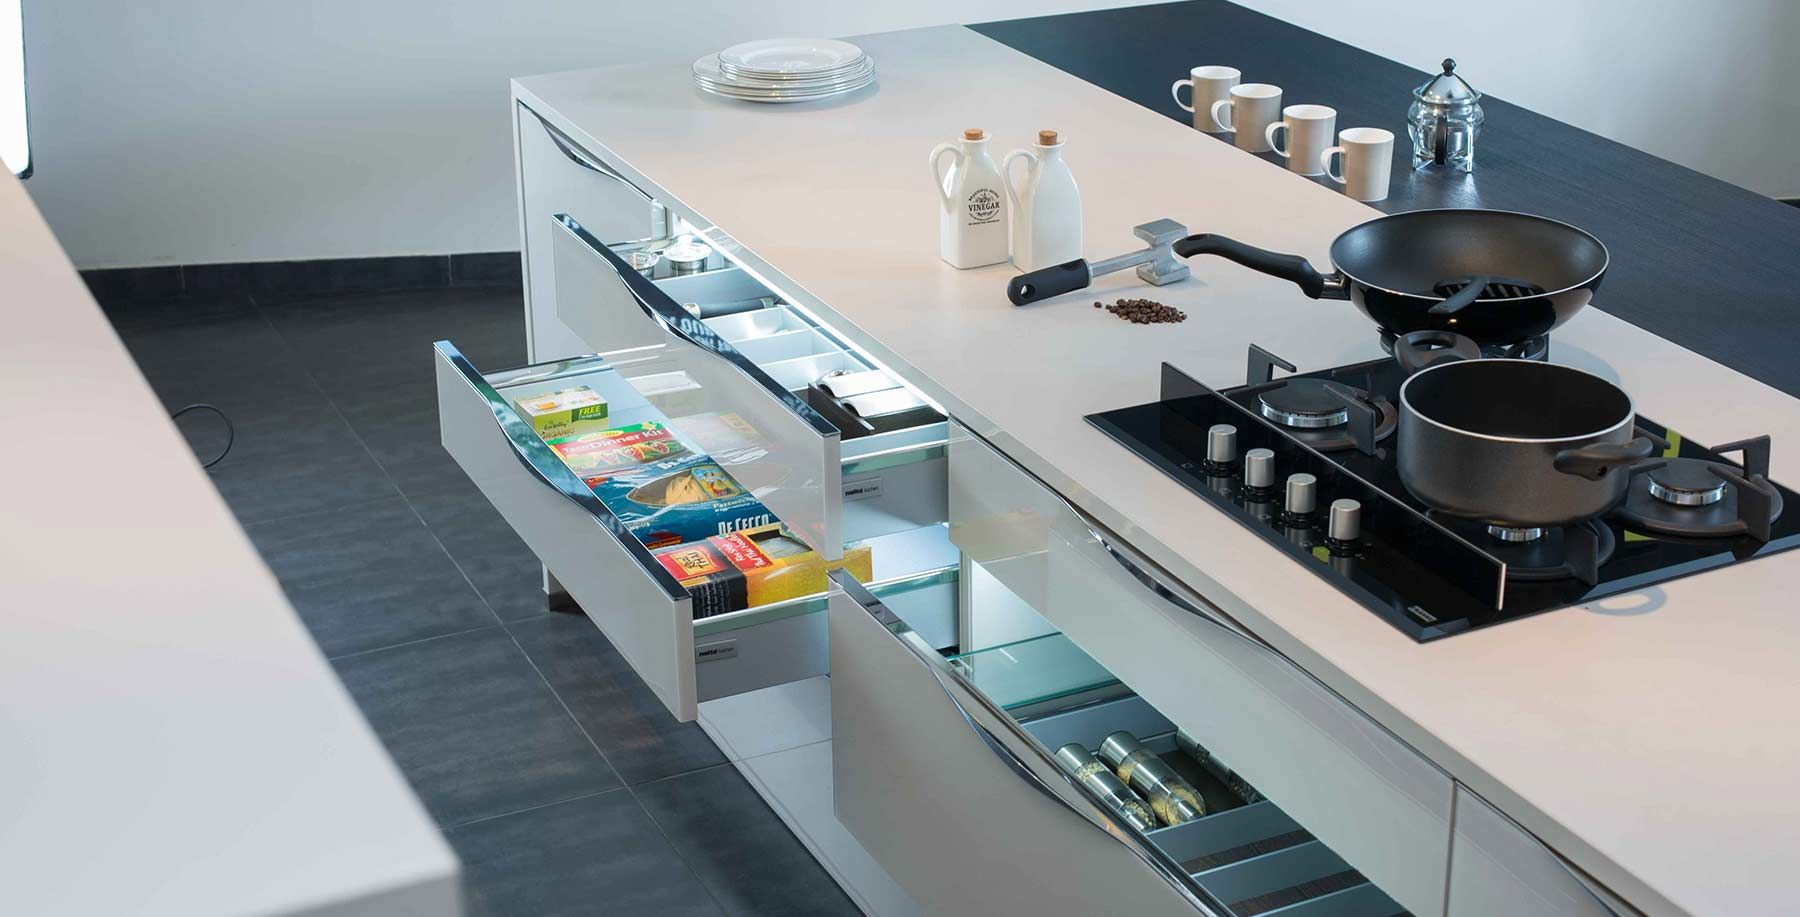 Modular Kitchen Accessories Designs - palesten.com -